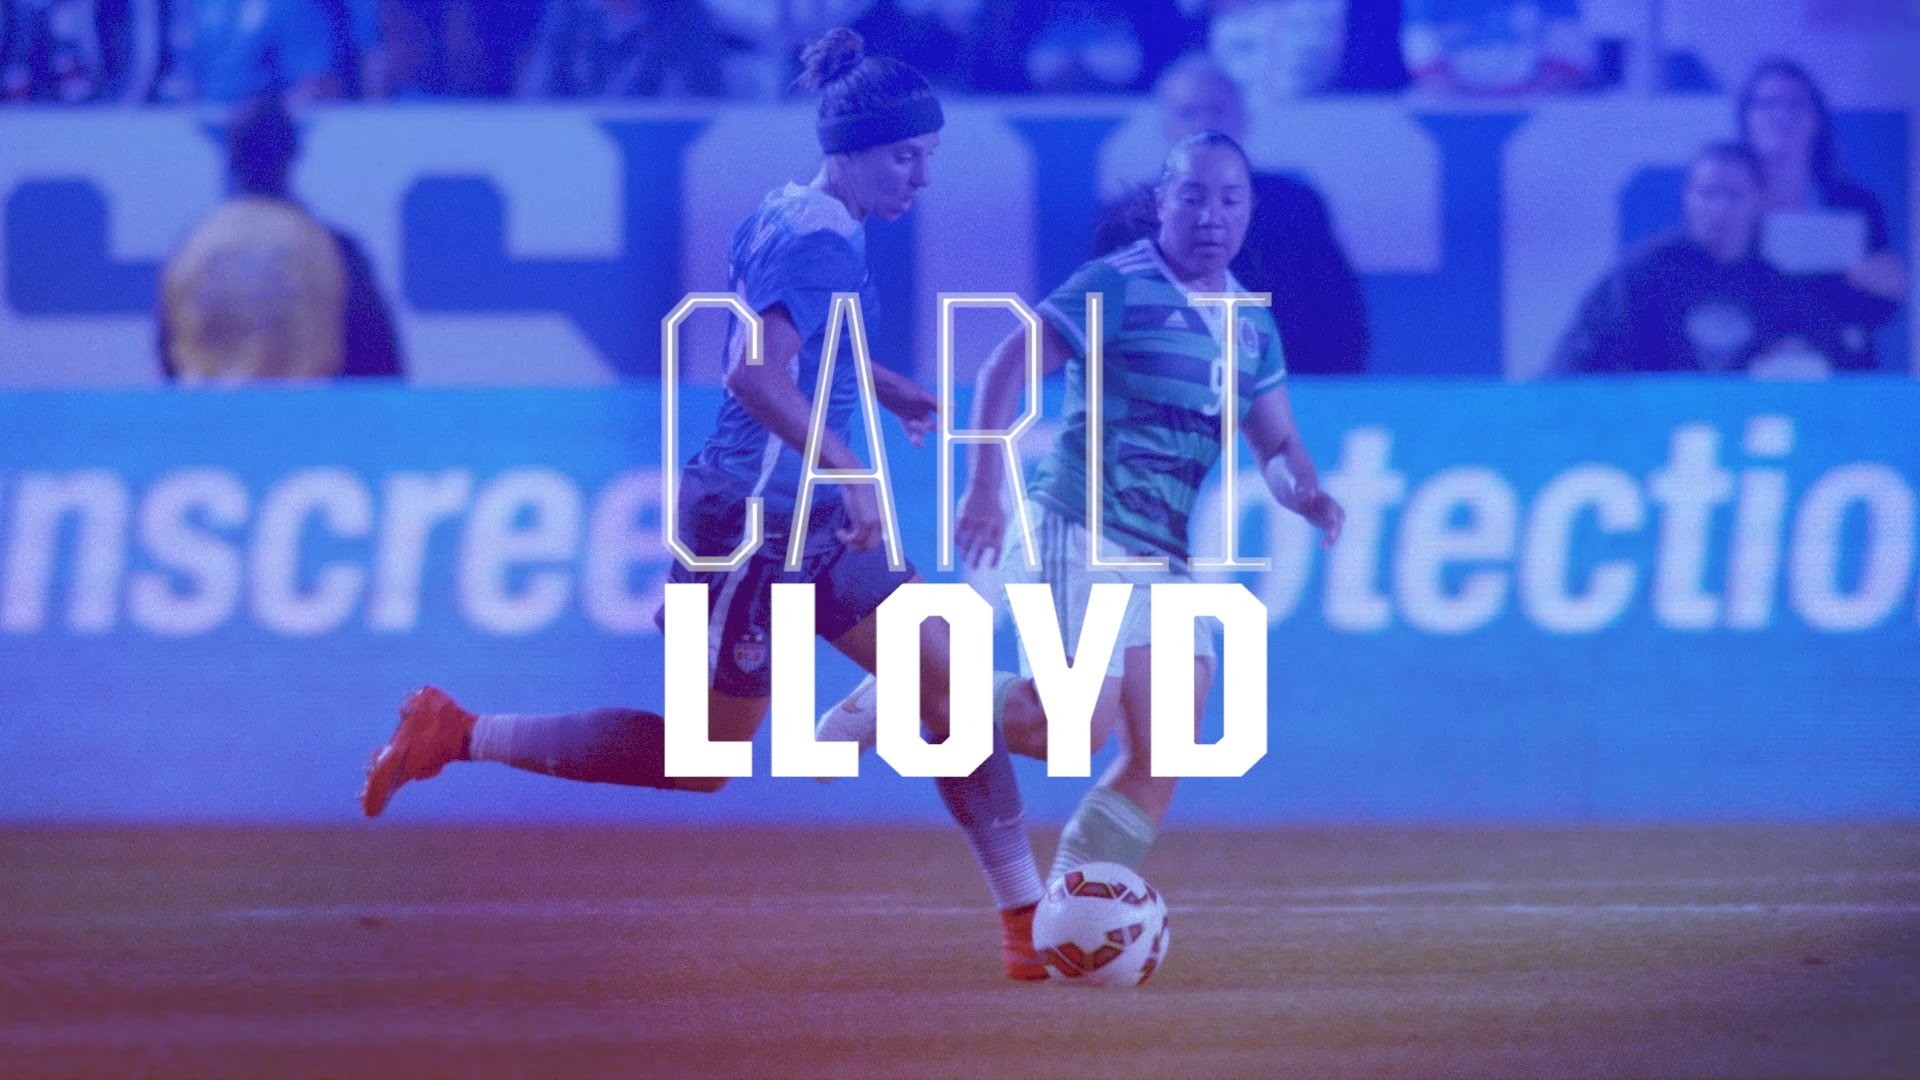 Carli Lloyd is the WNT's all-time scoring leader goals heading into the  2015 World Cup) for a midfielder. Lloyd has scored many crucial goals for  the USA.